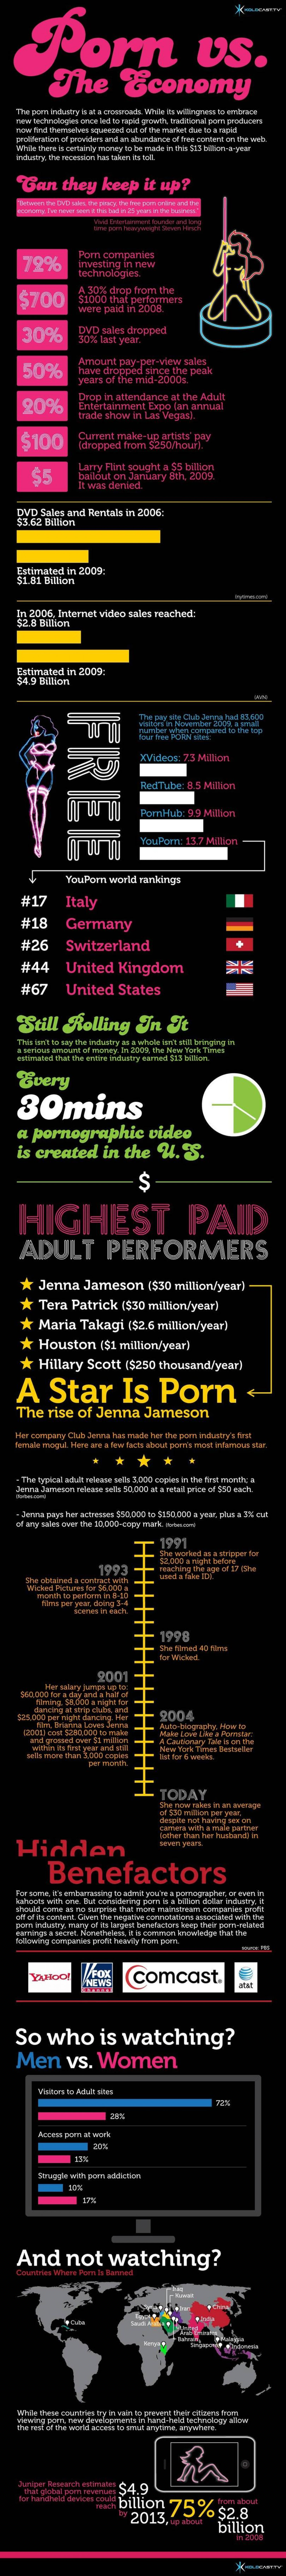 Porn vs The Economy Infographic